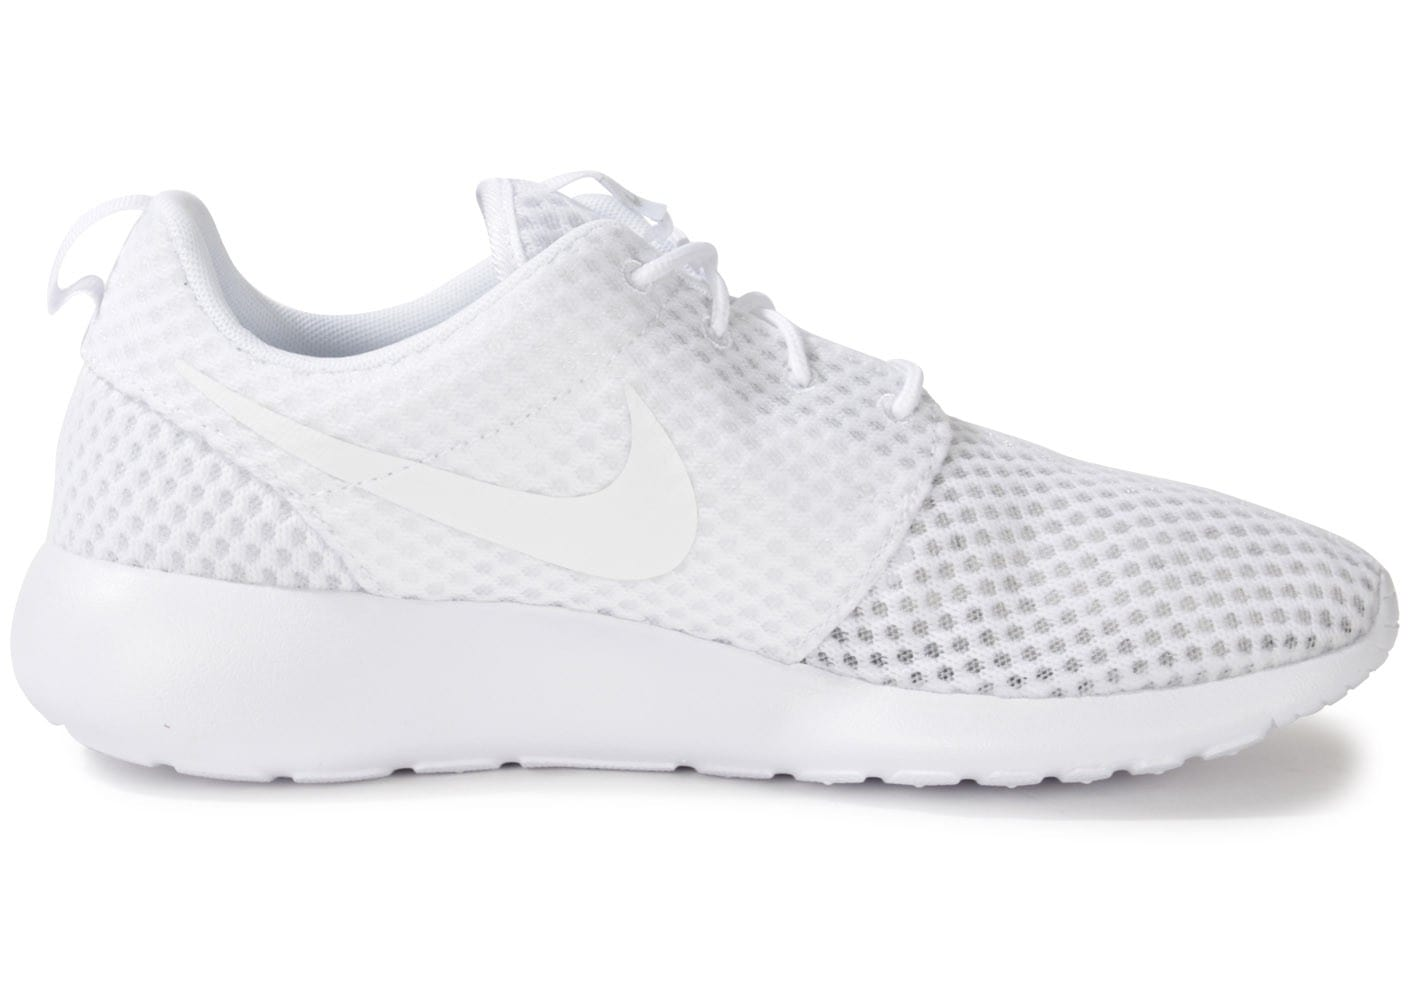 nike roshe run breeze blanche chaussures baskets homme chausport. Black Bedroom Furniture Sets. Home Design Ideas